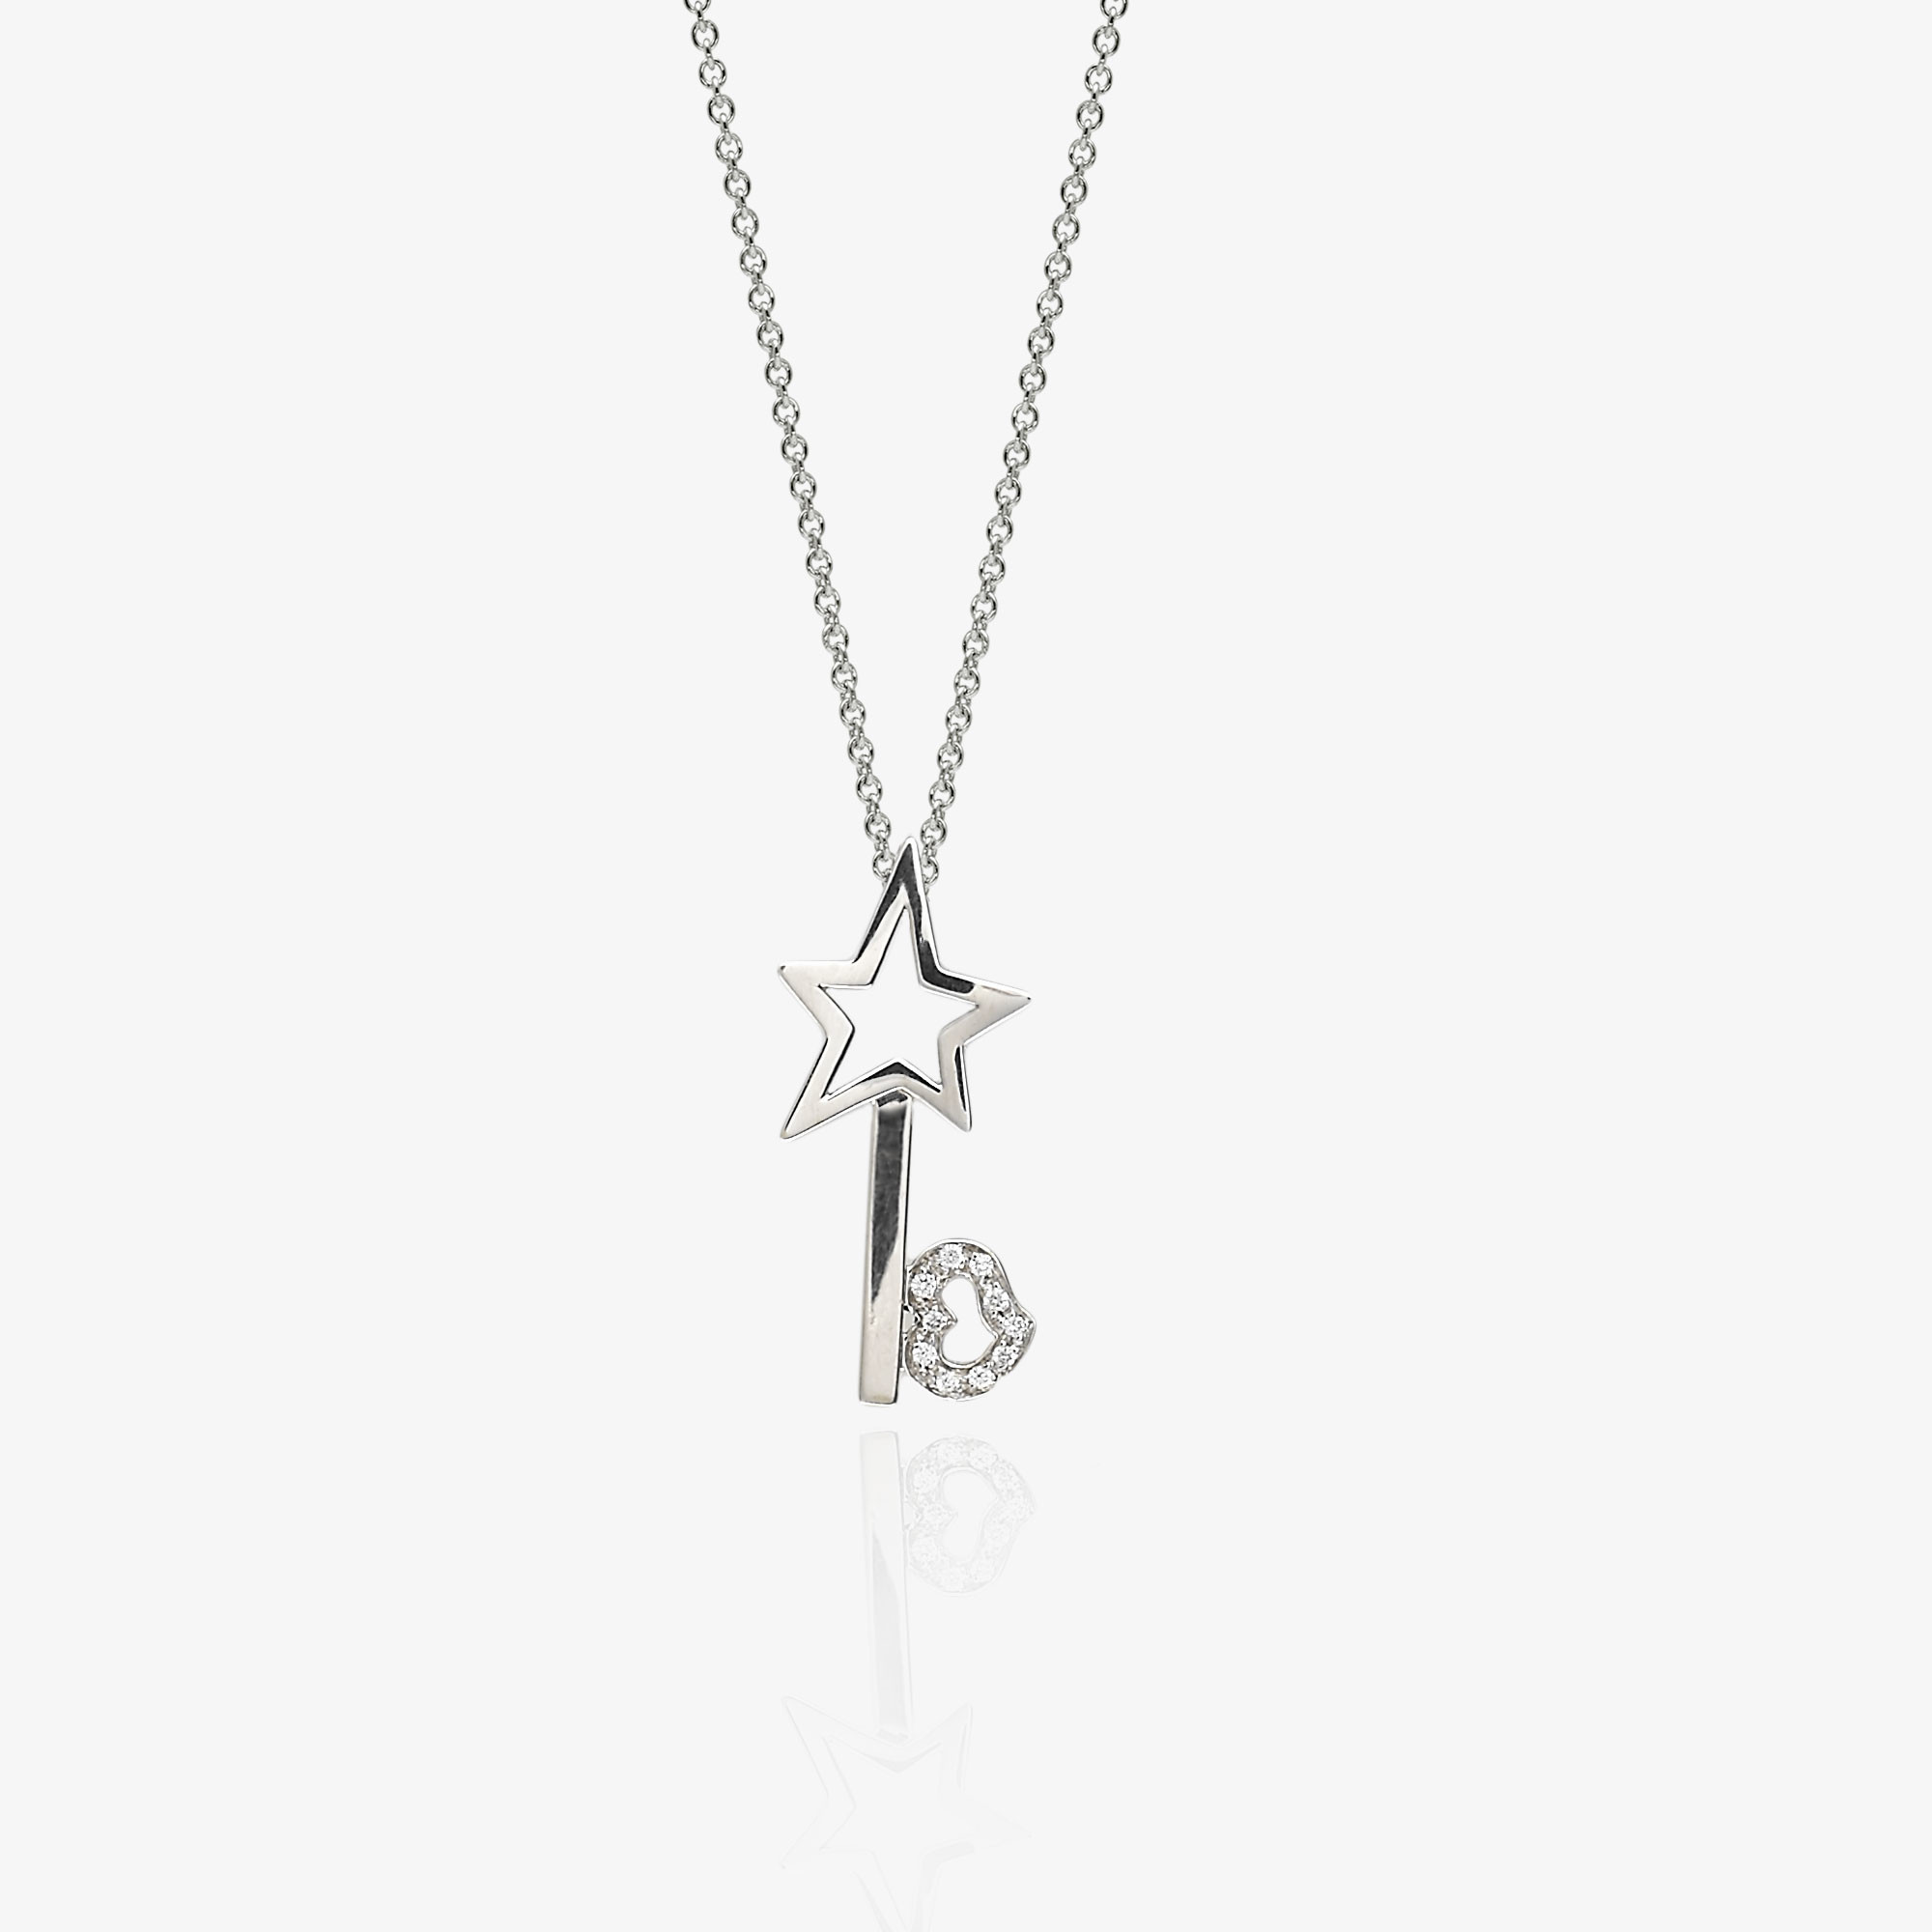 Star-key necklace